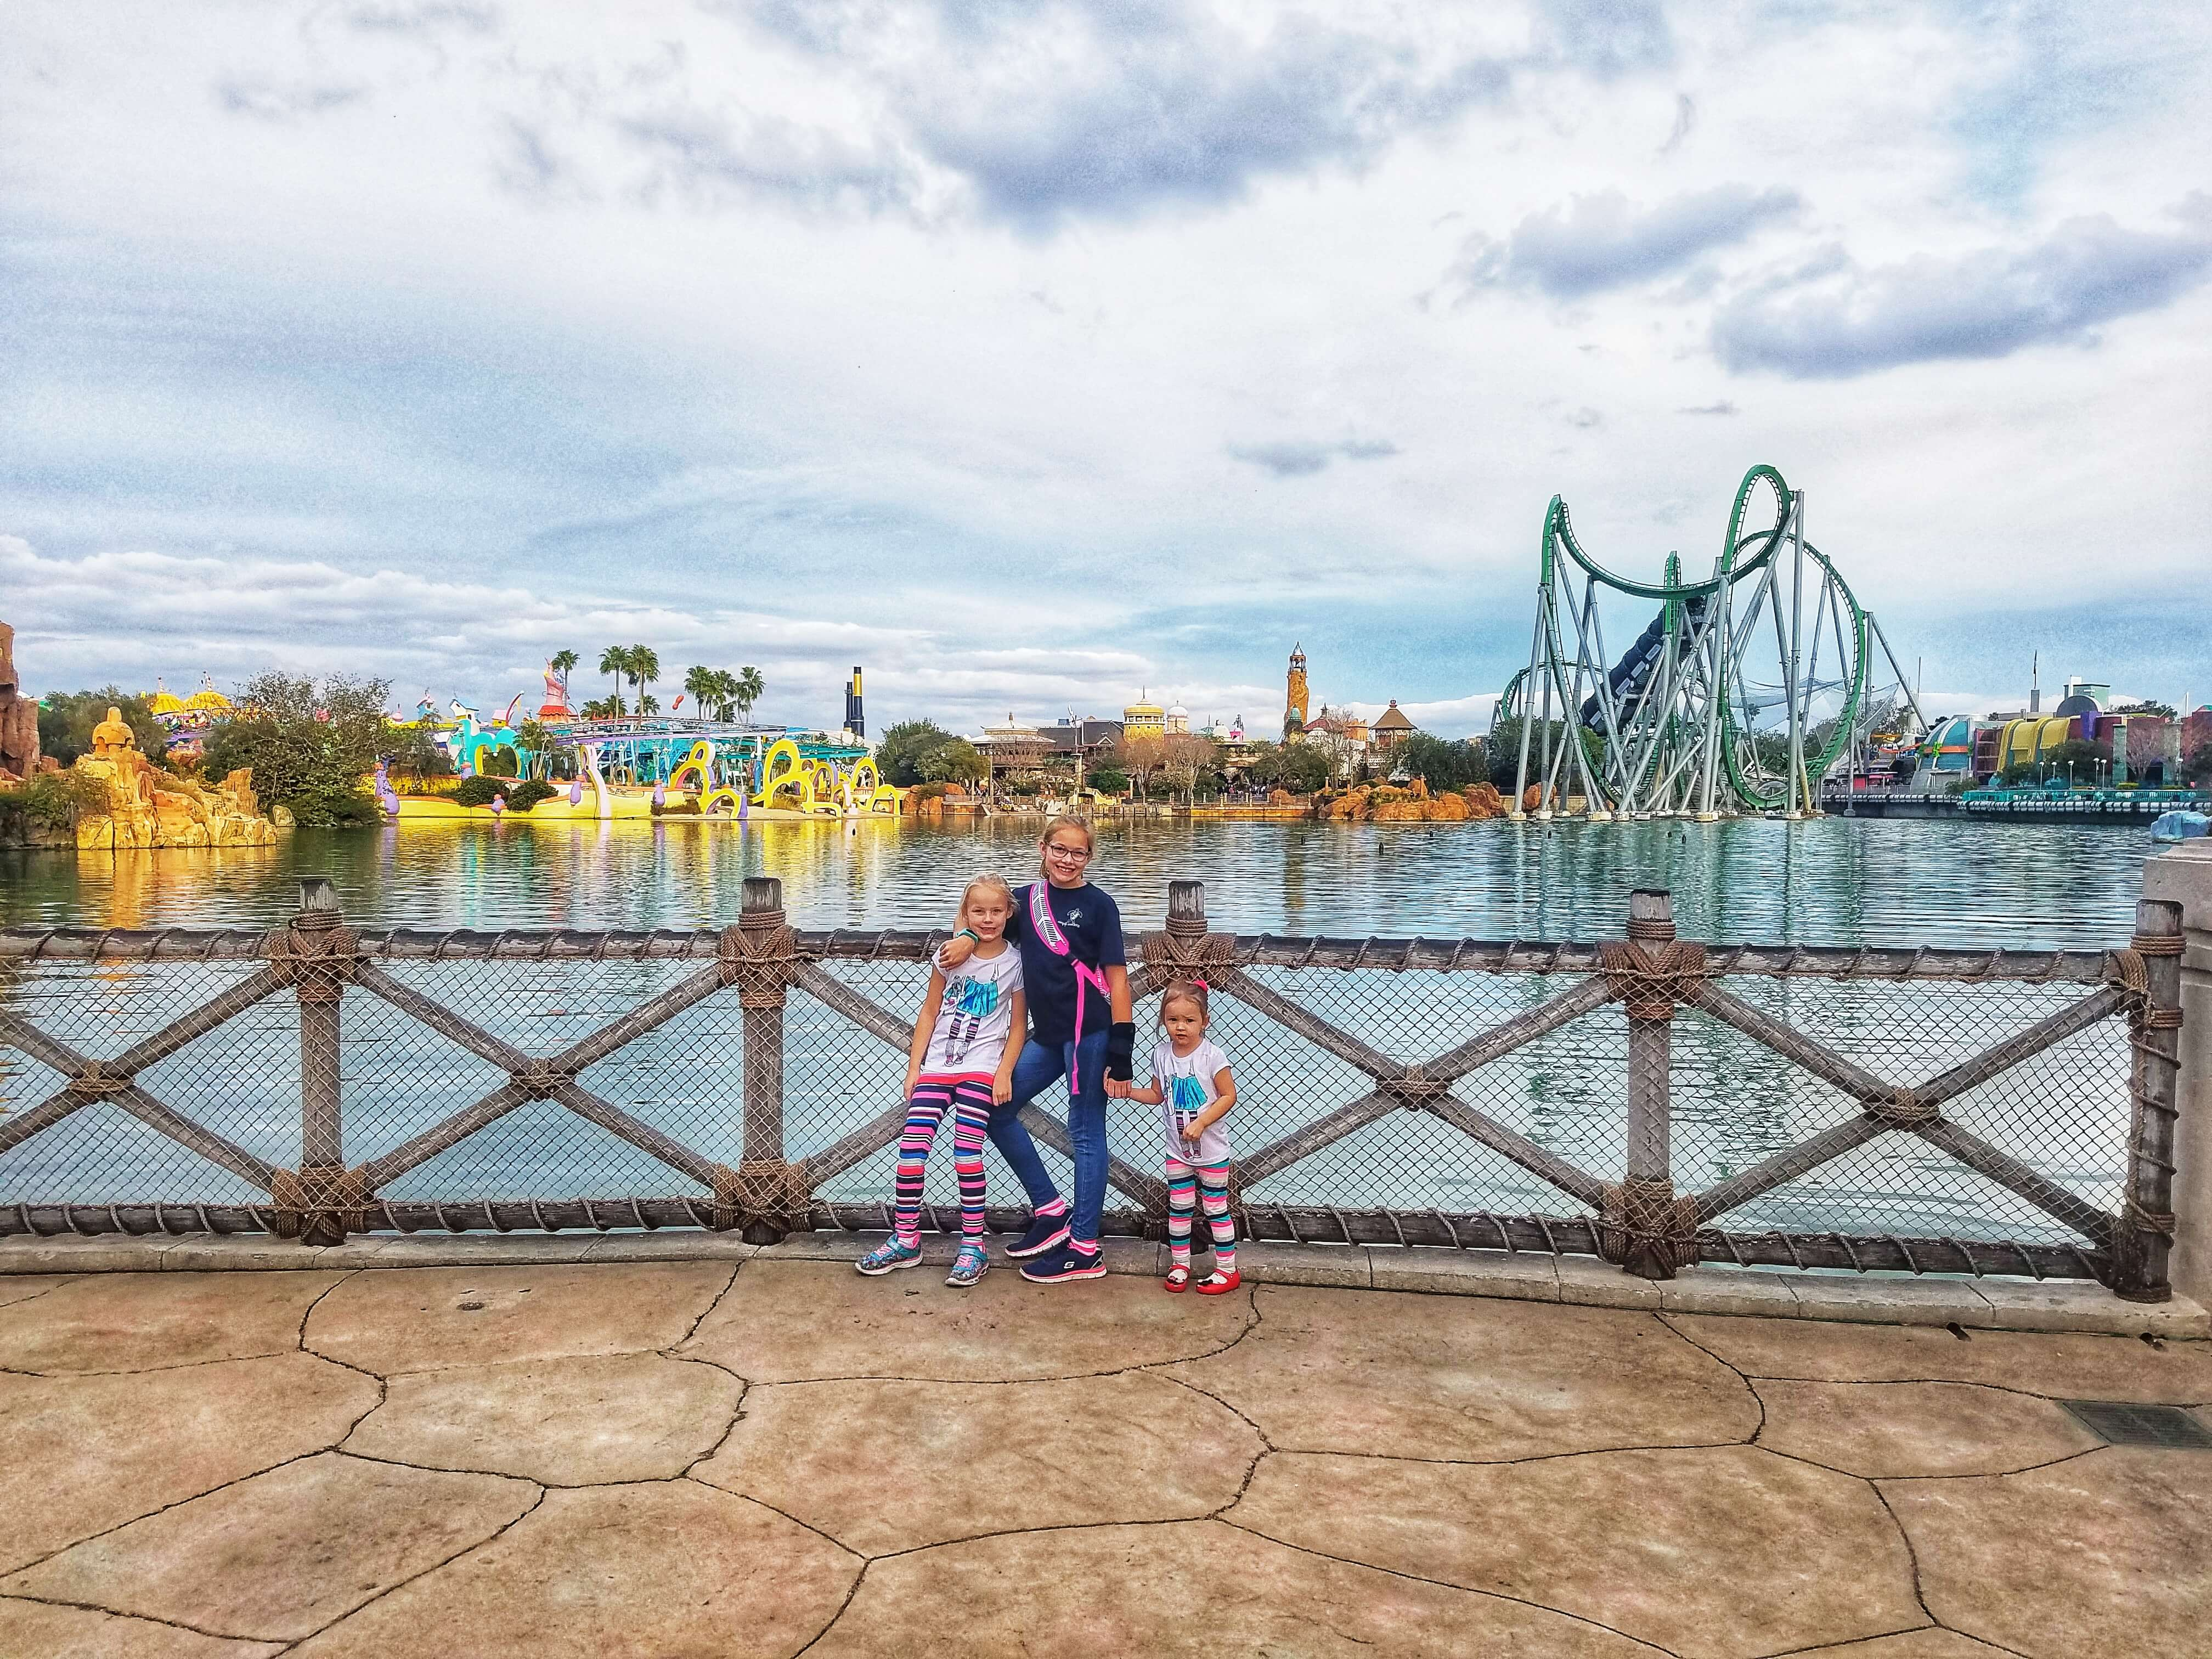 Universal Orlando Islands of Adventure